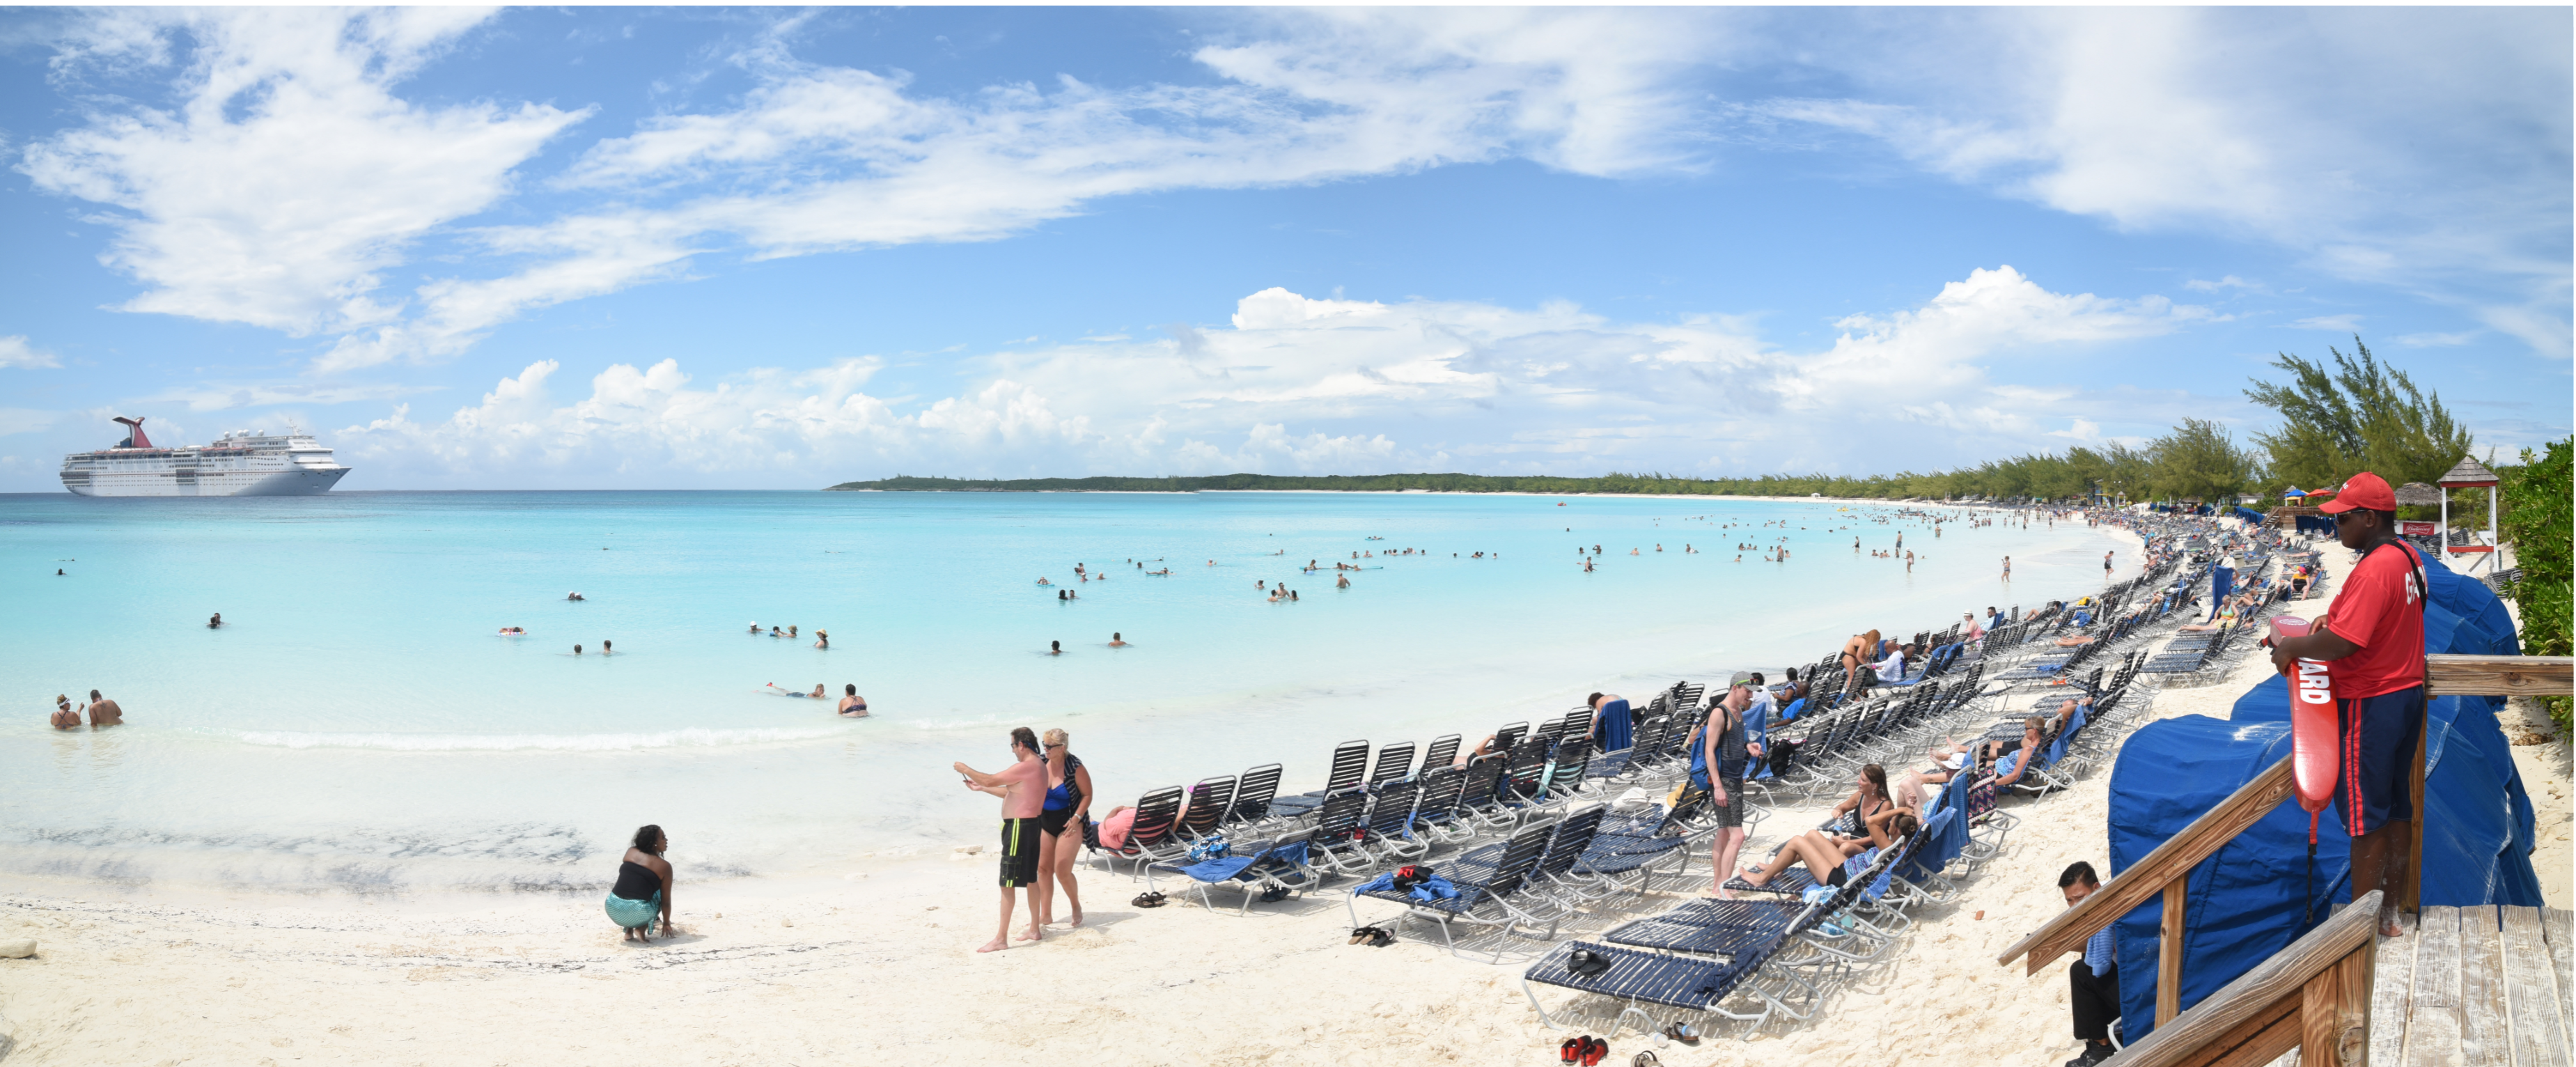 Carnival Ecstasy Resumes Calls at Half Moon Cay, Nearly 2,200 Guests Enjoy a Day of Fun in the Sun at the Private Bahamian Island